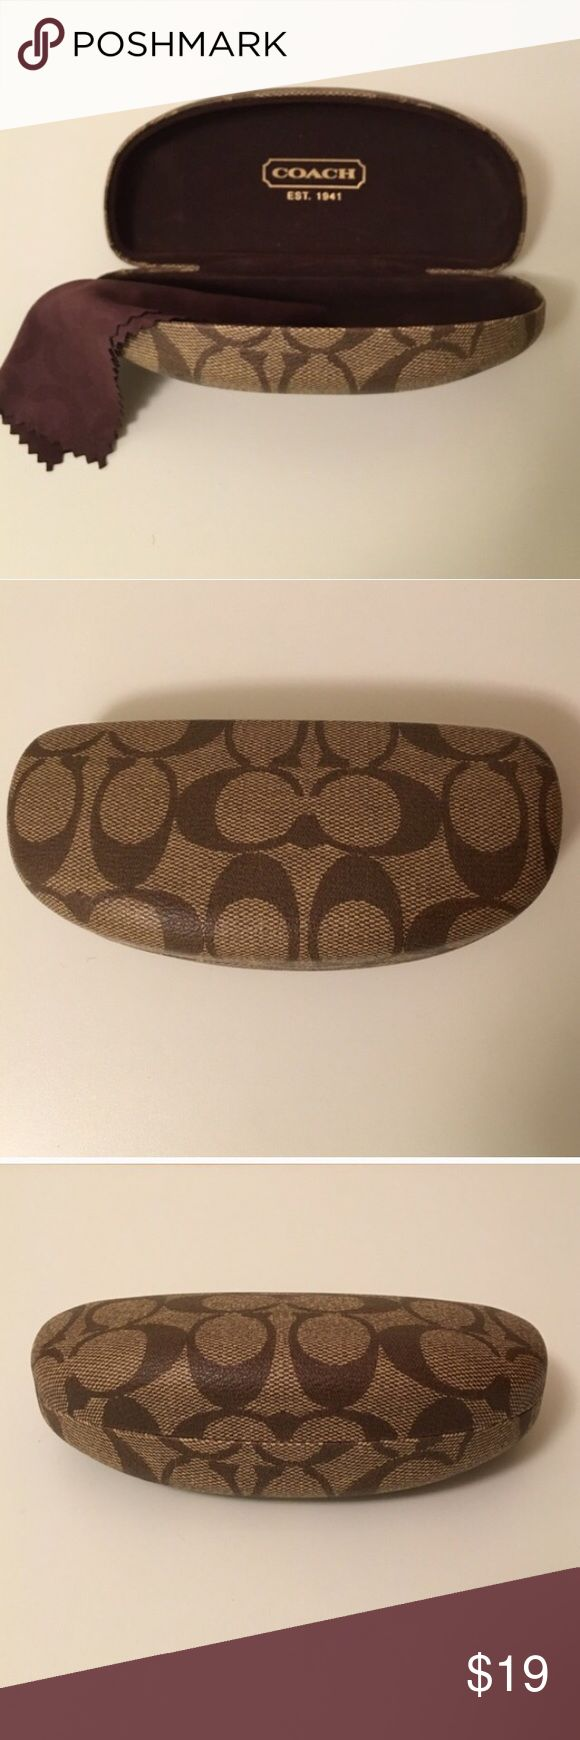 """COACH hard case for glasses / sunglasses Hard case with signature COACH logo pattern in tan and brown for your eyeglasses or sunglasses. Spring-loaded hinge to keep them safely tucked inside. Includes COACH cleaning cloth. Measures 6-1/2"""" x 3"""" x 2"""". Coach Accessories"""